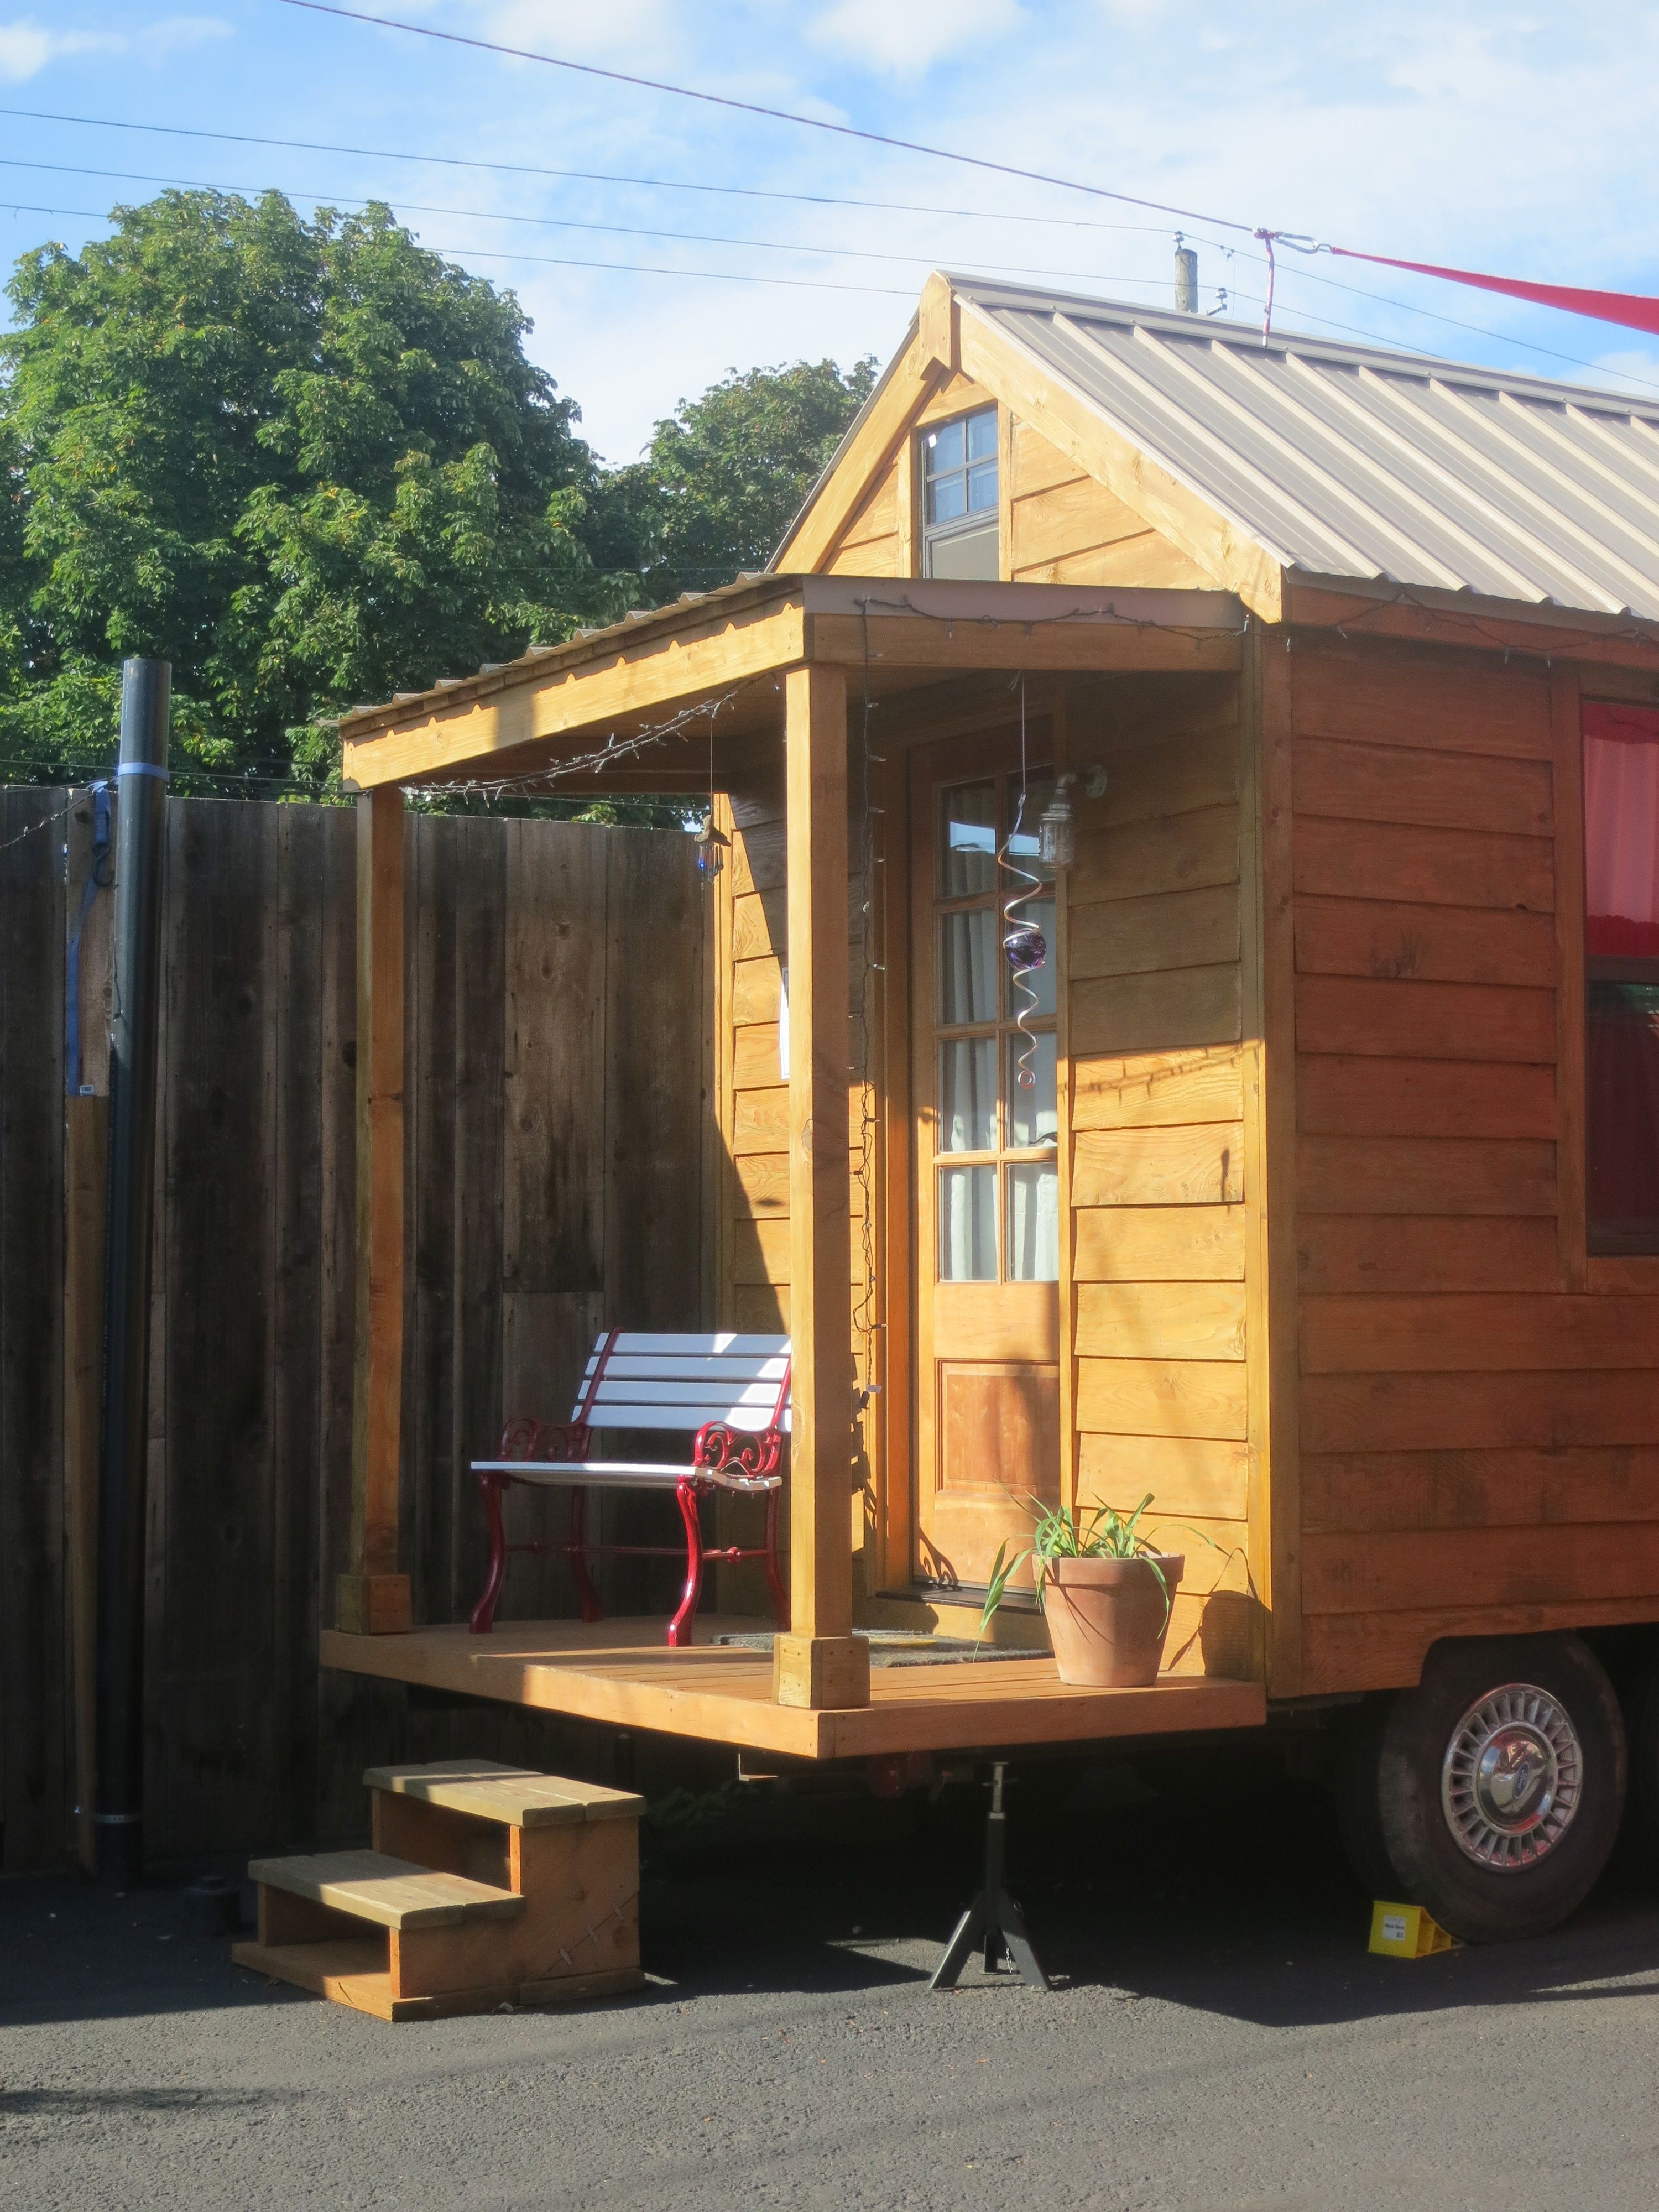 Another house at the Caravan Tiny House Hotel